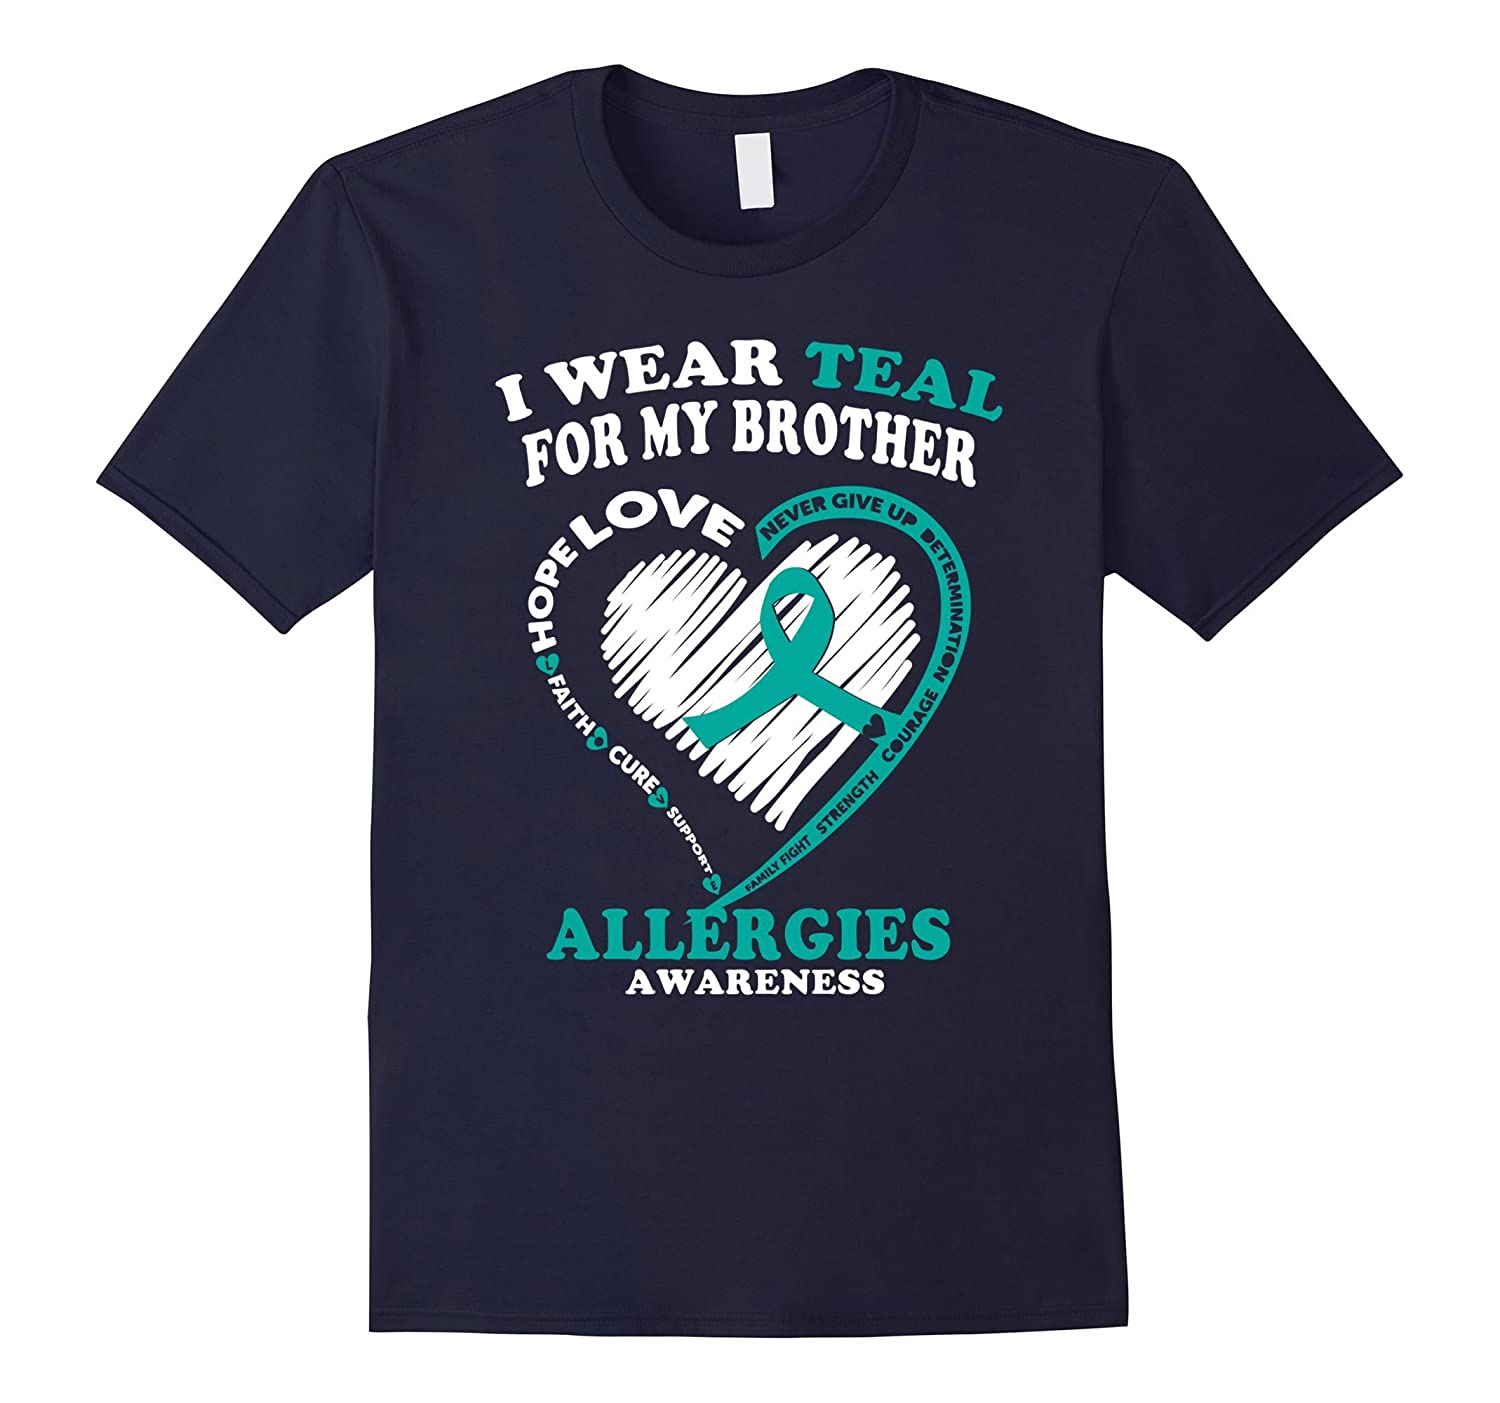 Allergies Awareness T Shirt - I Wear Teal For My Brother-TH